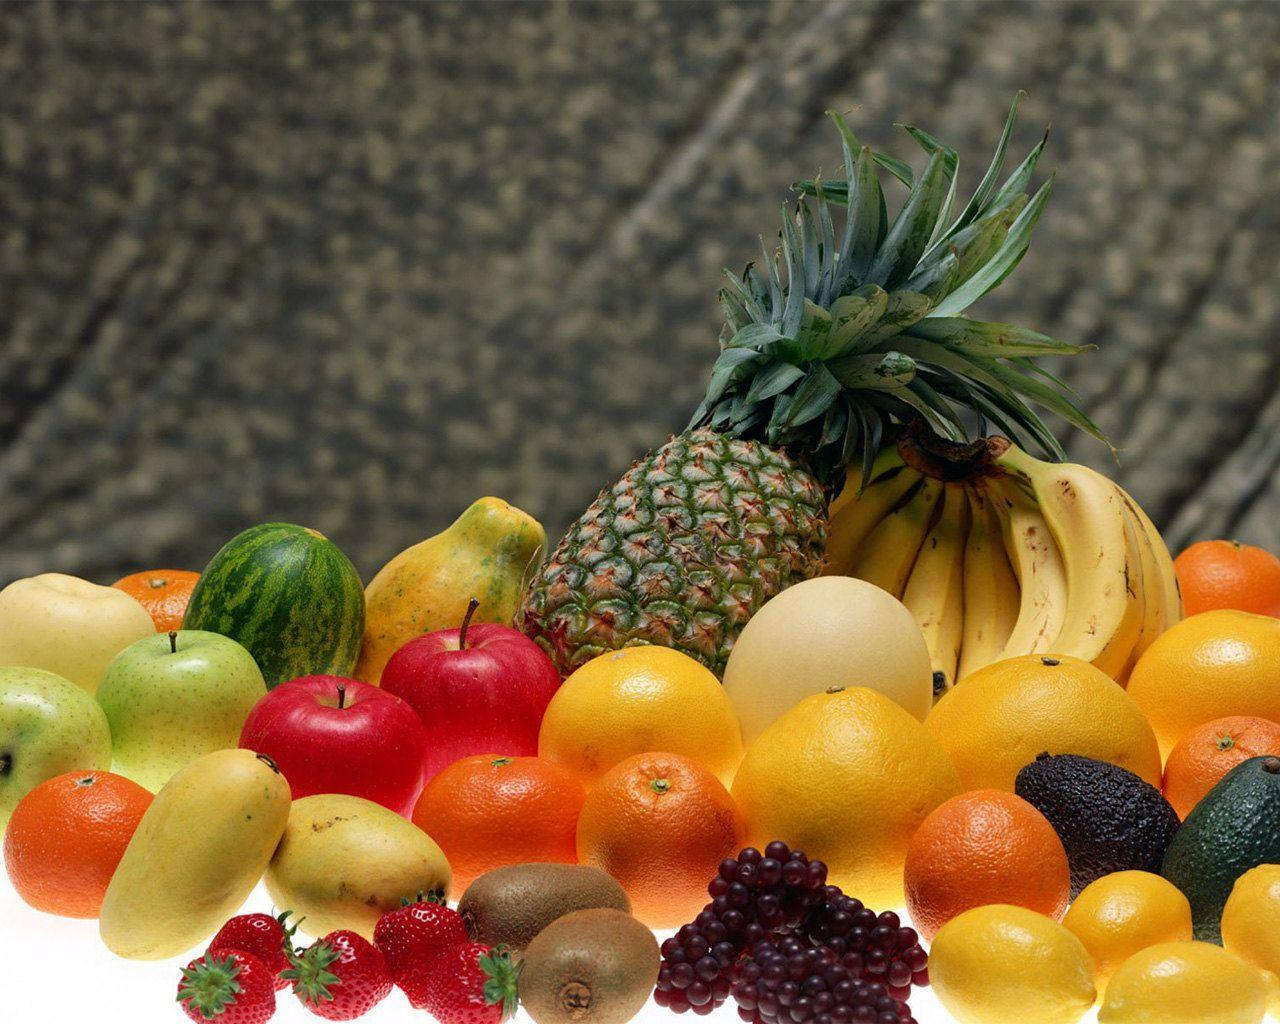 Wallpaper of fruits - Funny Fruit Wallpapers Zone Wallpaper Backgrounds